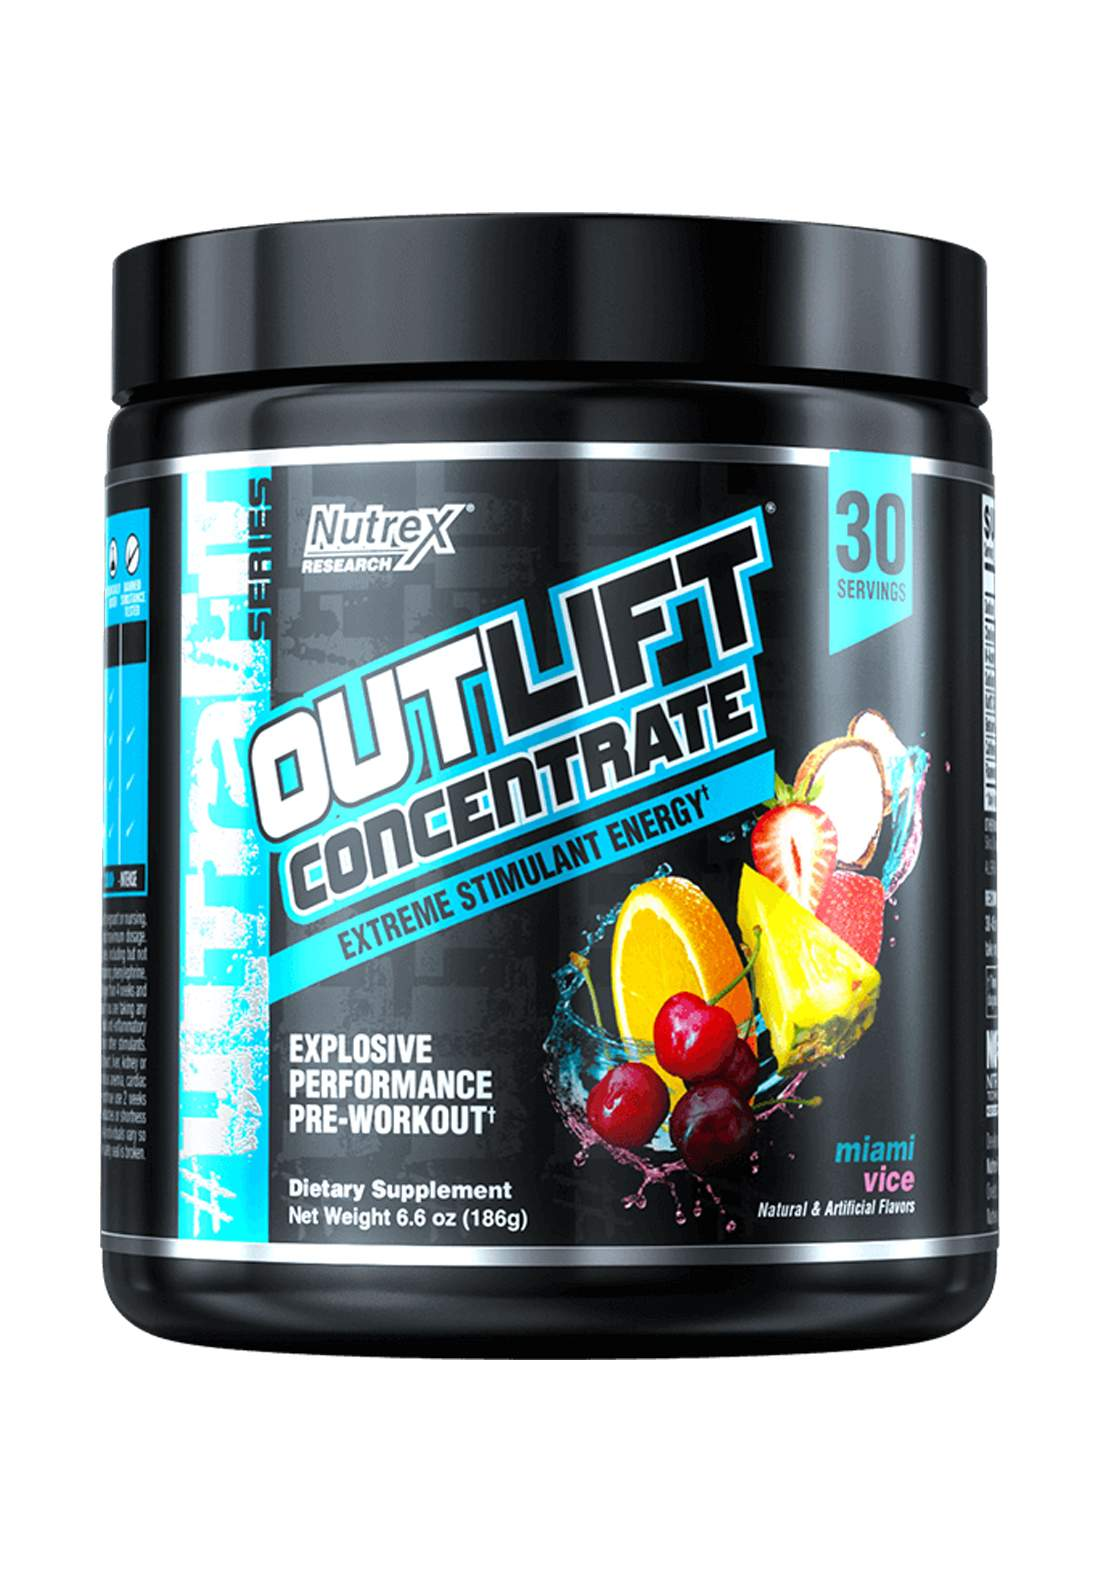 Nutrex Outlift Concentrate Extreme Energy Stimulant Miami Vice 30 Servings  مكمل غذائي